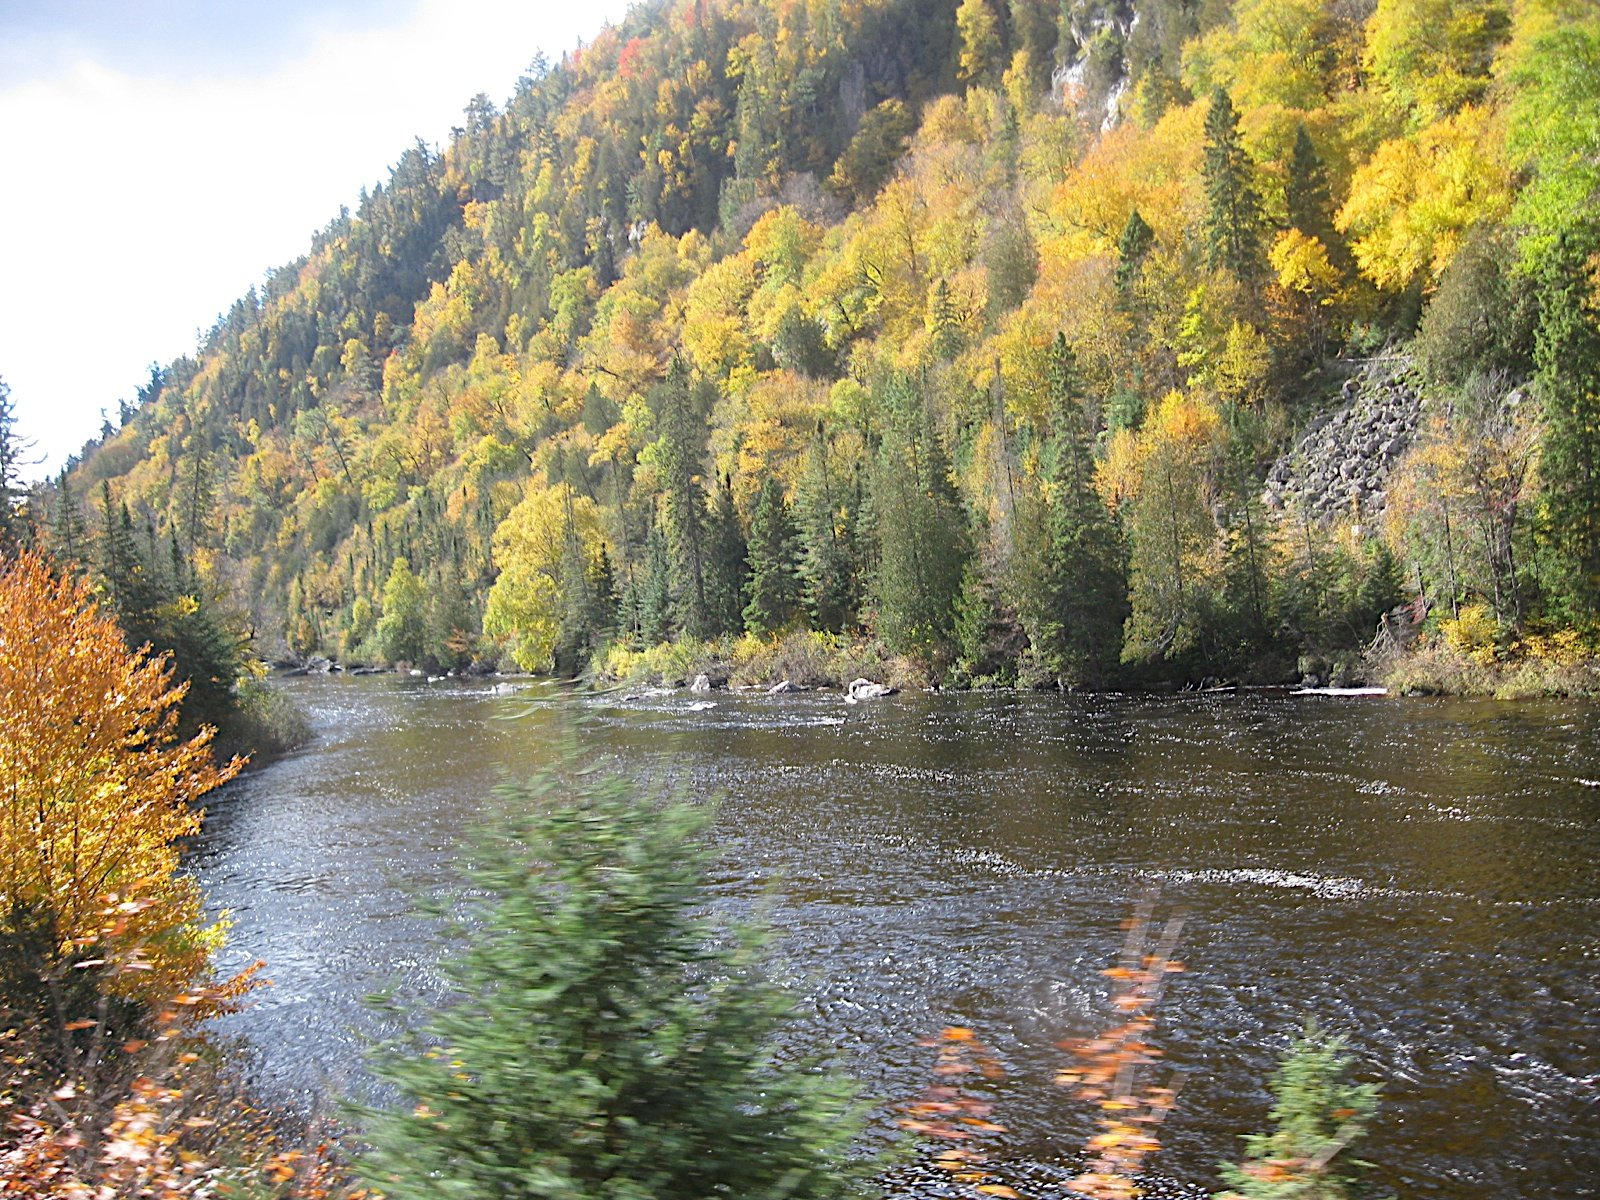 Agawa Canyon Scenic View Google image from picasaweb.google.com